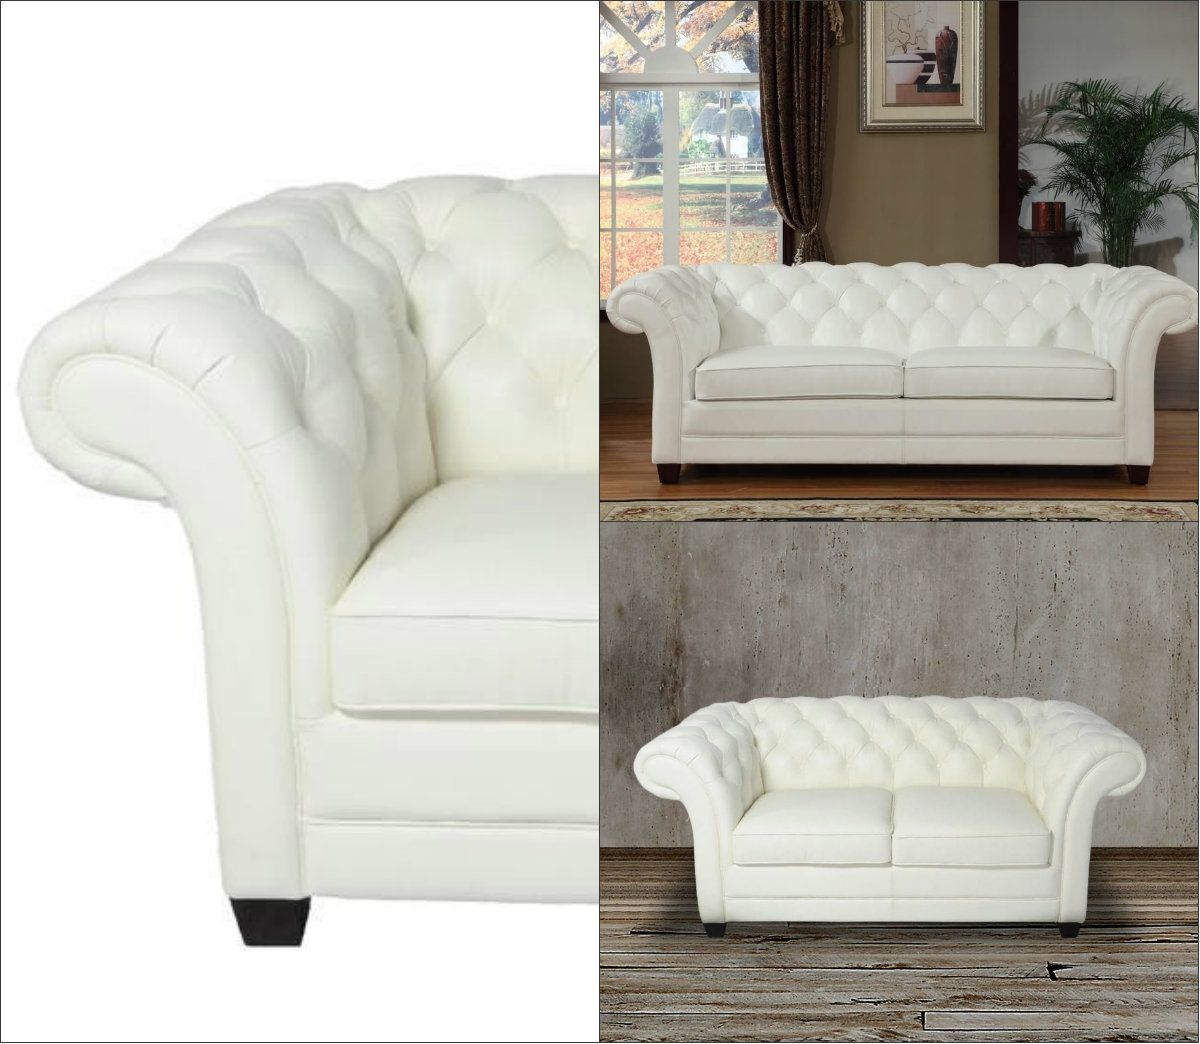 This Luxurious Chesterfield Sofa And Loveseat Set Boasts Of Tufted